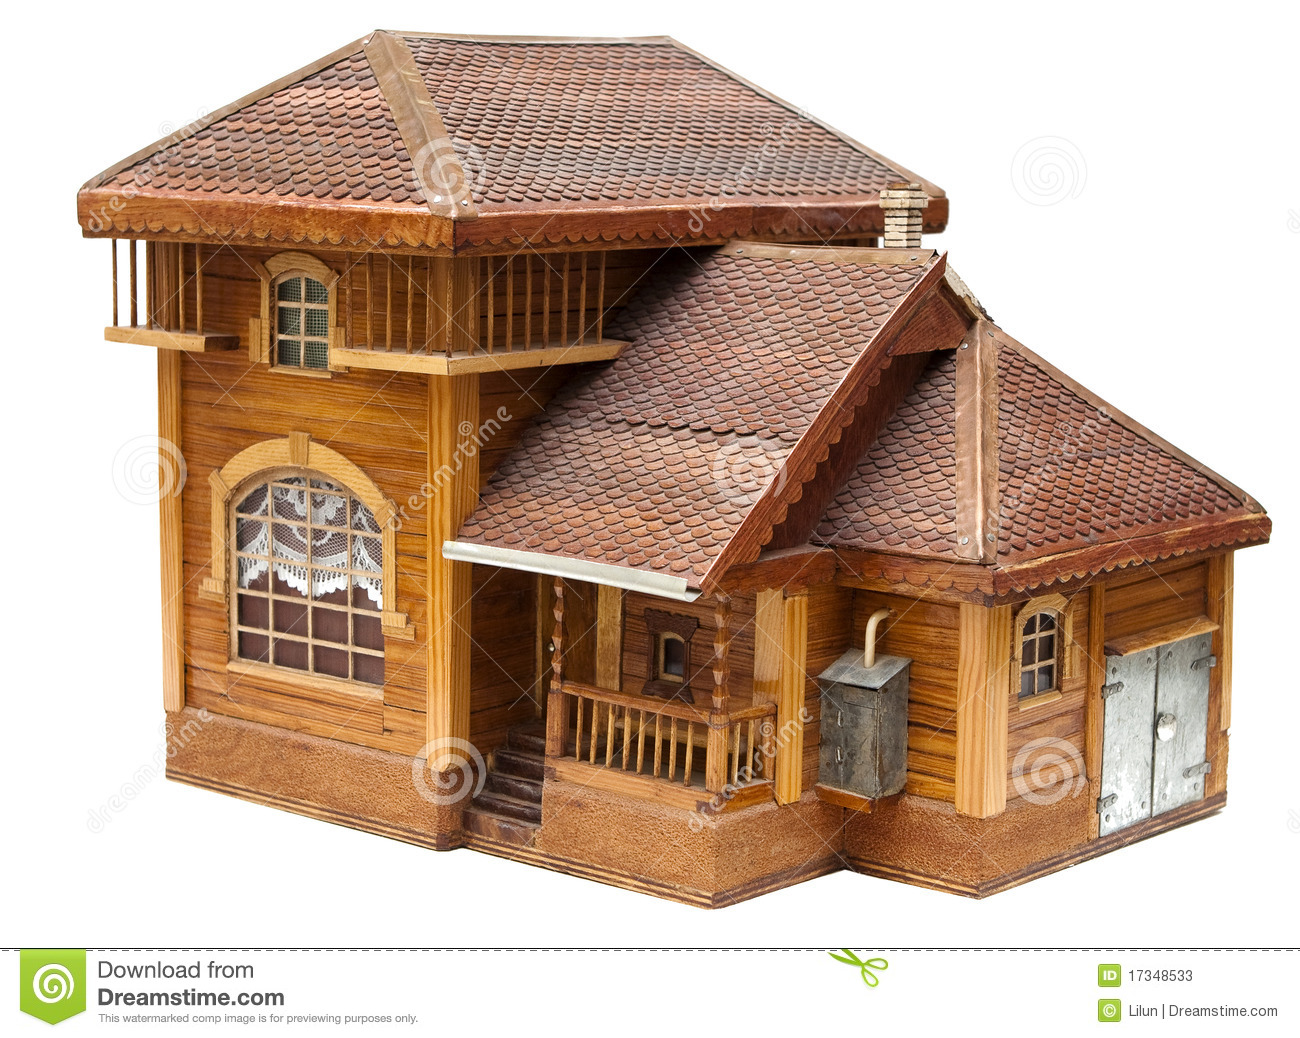 Model of the house made of wood stock image image 17348533 for Wood house images